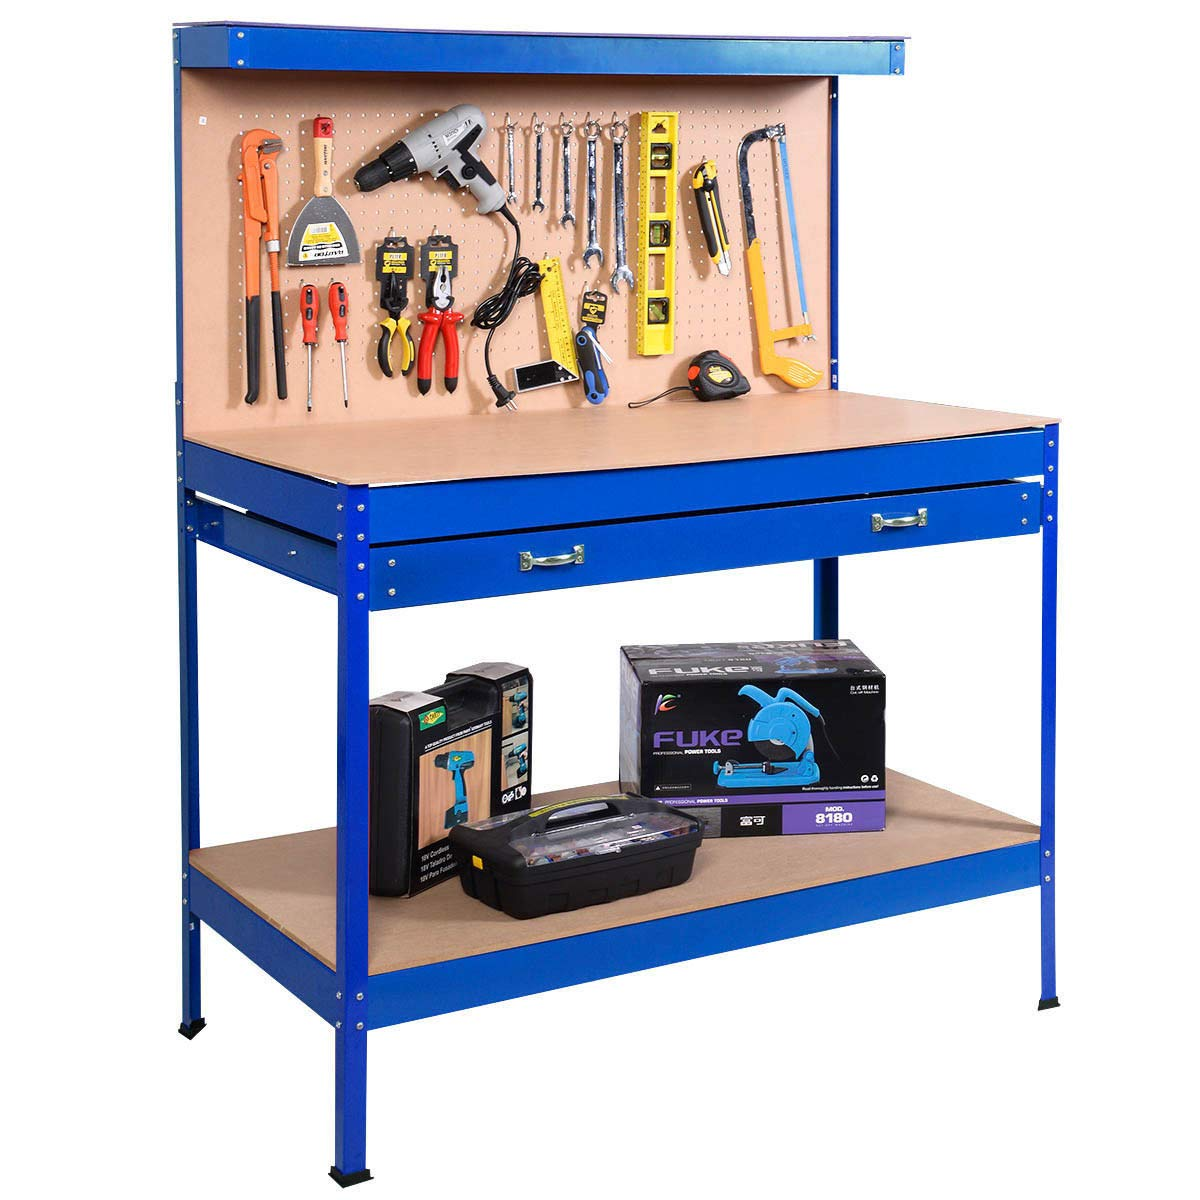 Admirable Safstar Work Bench Home Workshop Tools Table With Organizer Drawer Blue Andrewgaddart Wooden Chair Designs For Living Room Andrewgaddartcom